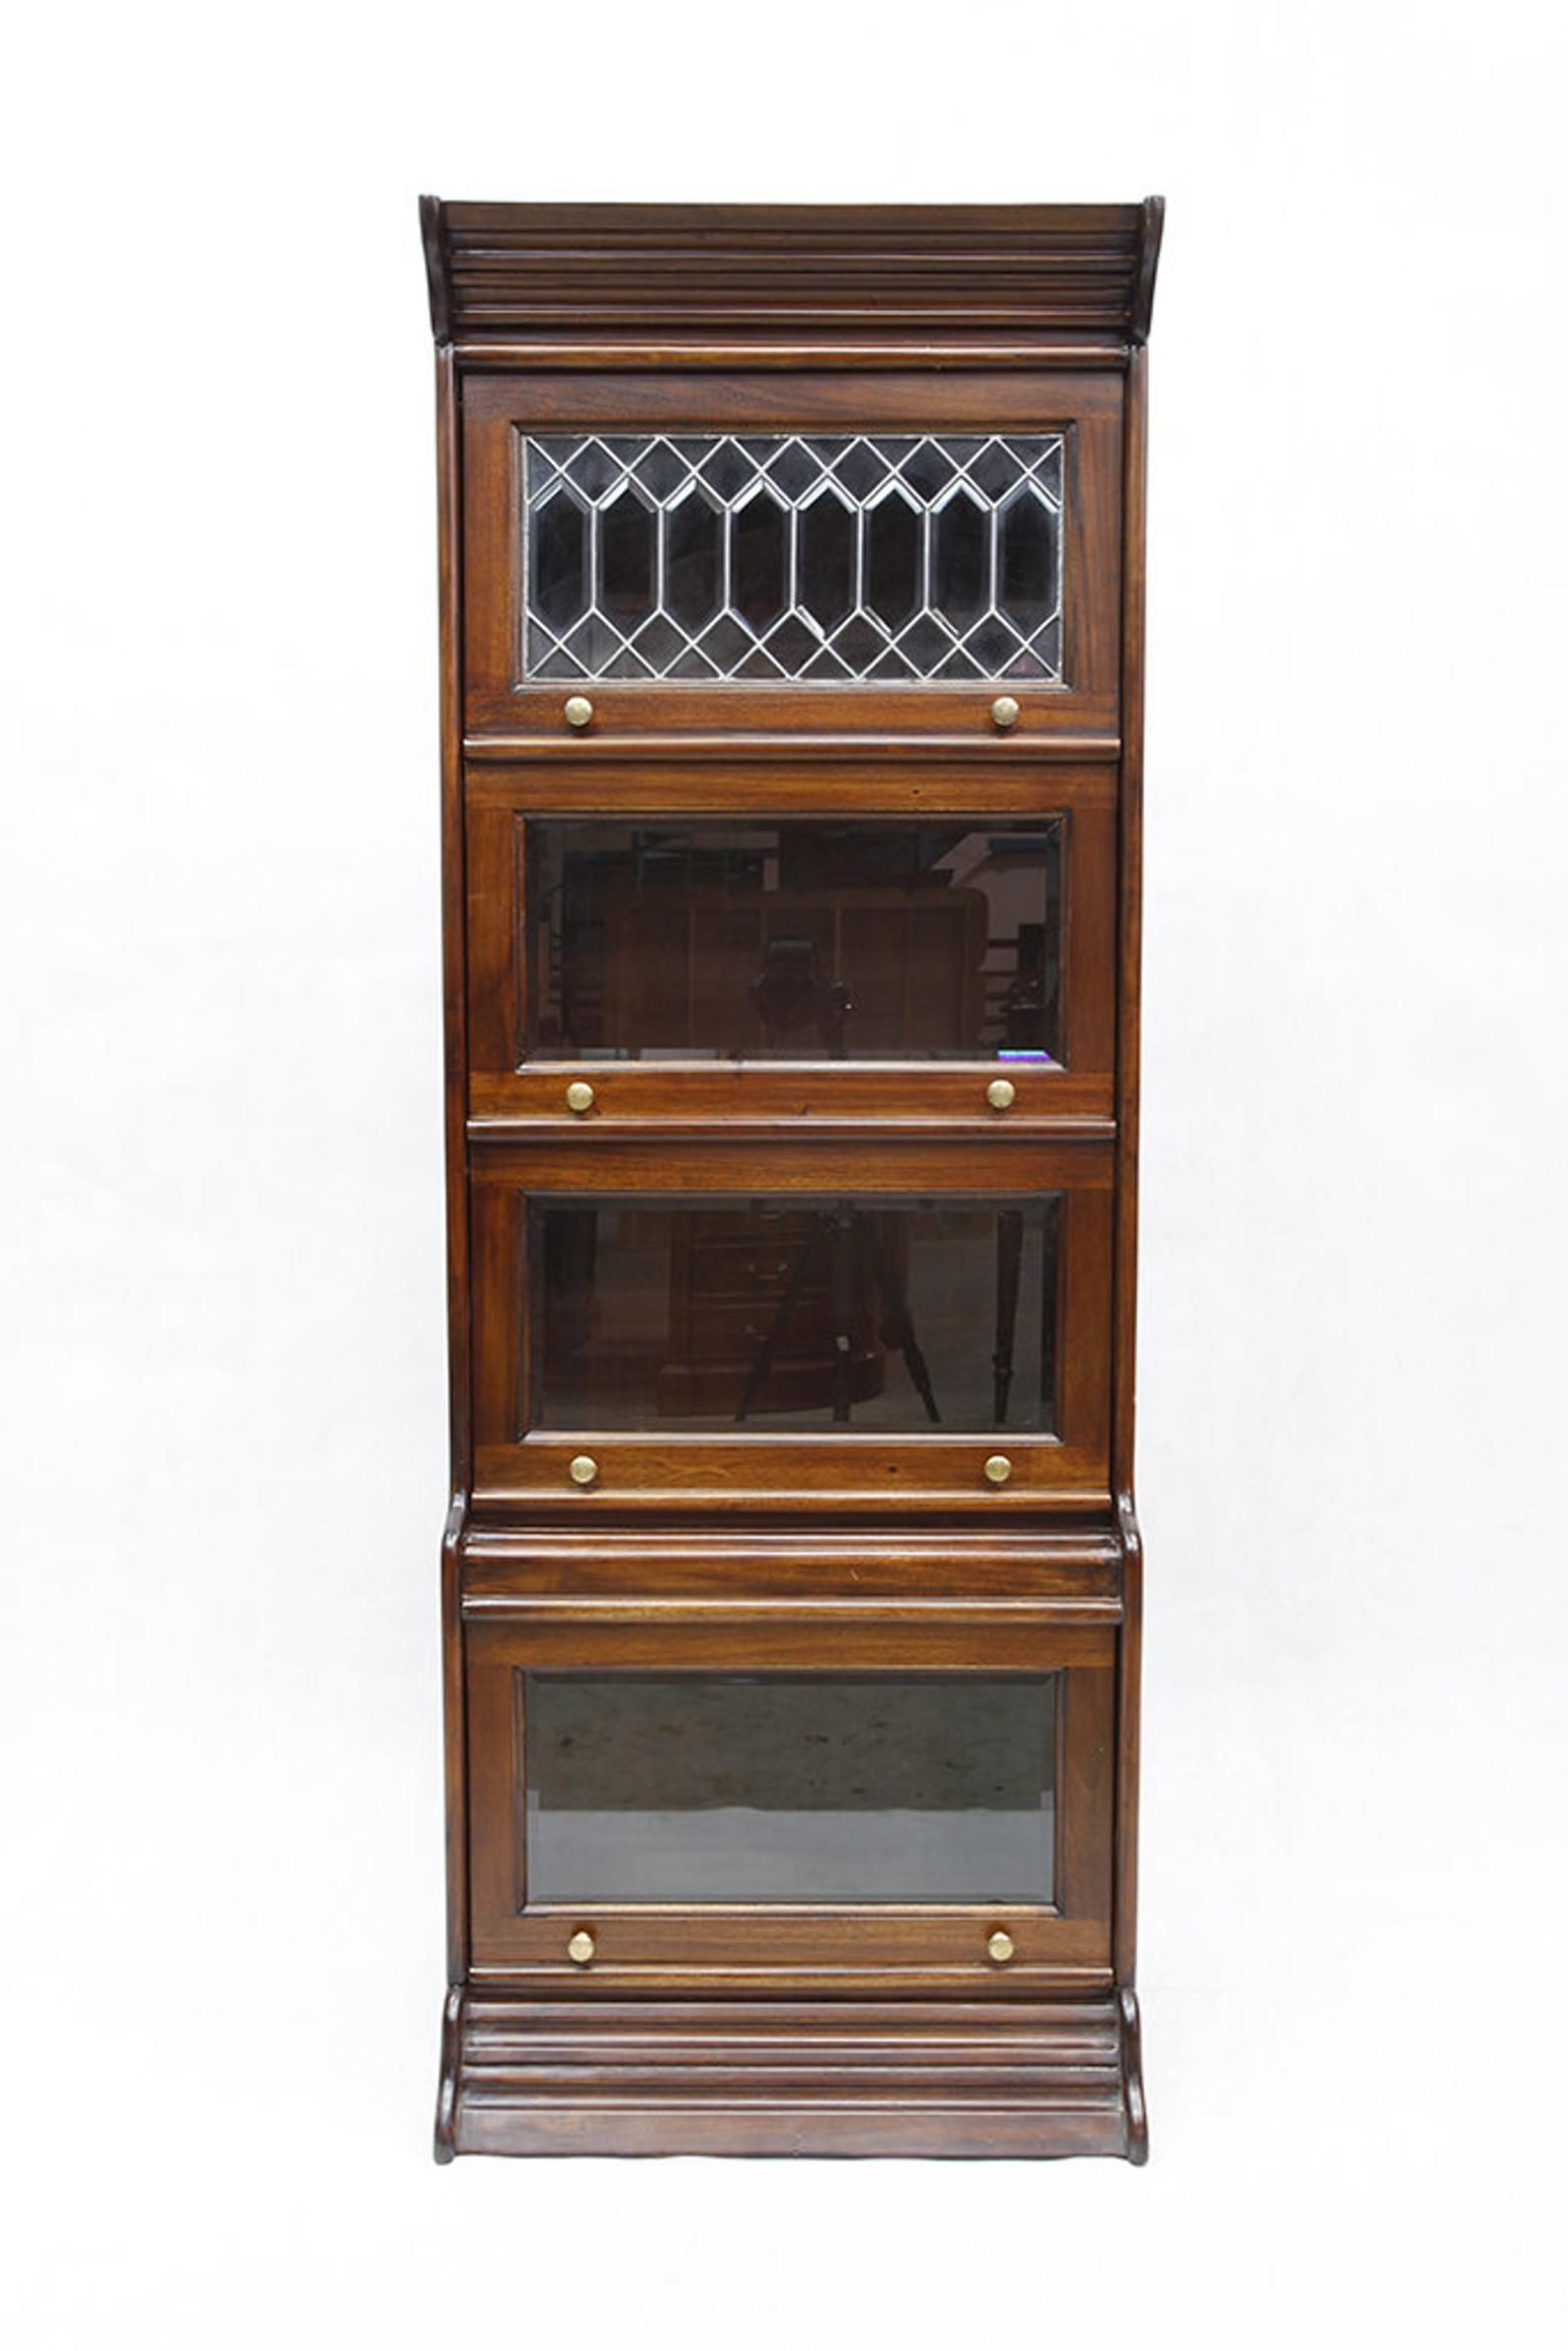 Mahogany Wood 4 Door 24 Wide Barrister Bookcase With Etsy In 2020 Barrister Bookcase Mahogany Wood Leaded Glass